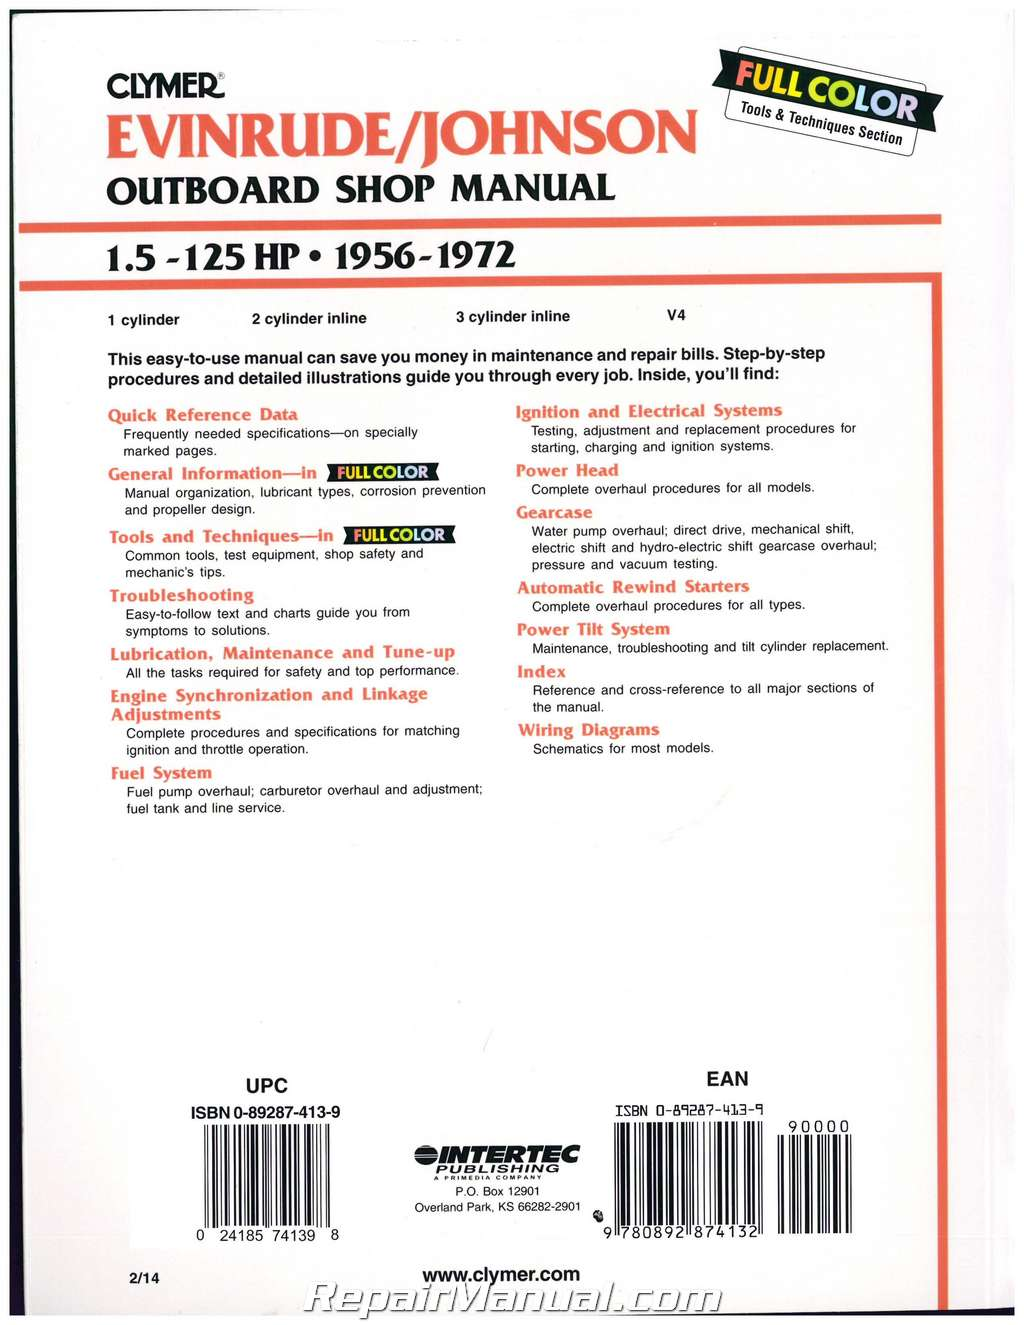 Clymer Evinrude-Johnson 1.5-125 hp 1956-1972 Outboard Boat Engine Service  Manual